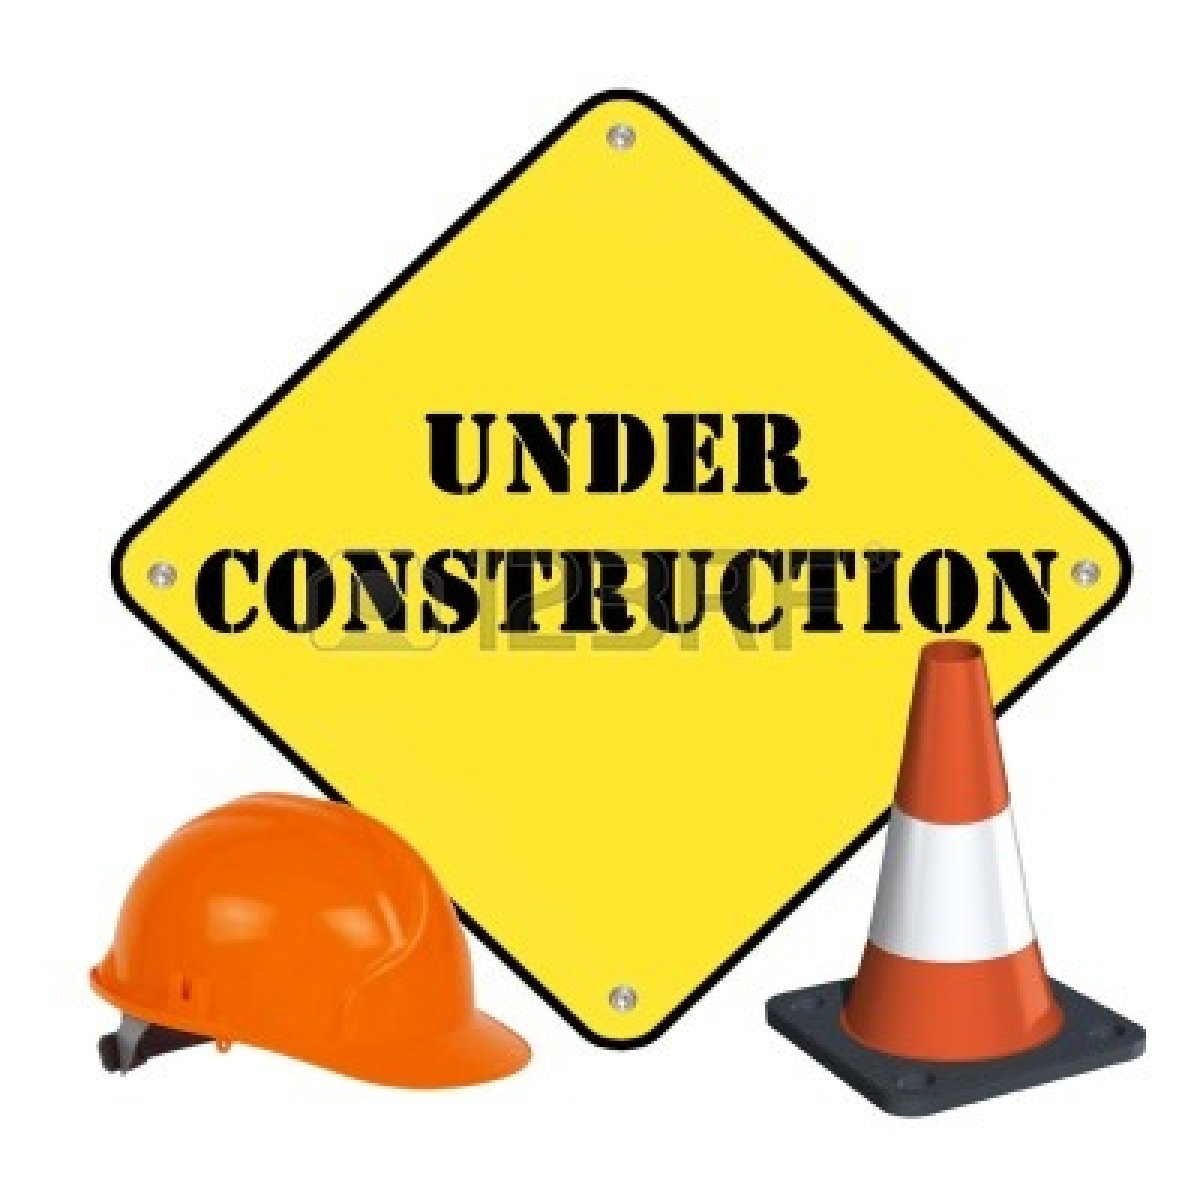 1200x1200 Under Construction Clipart Free Clipart Images